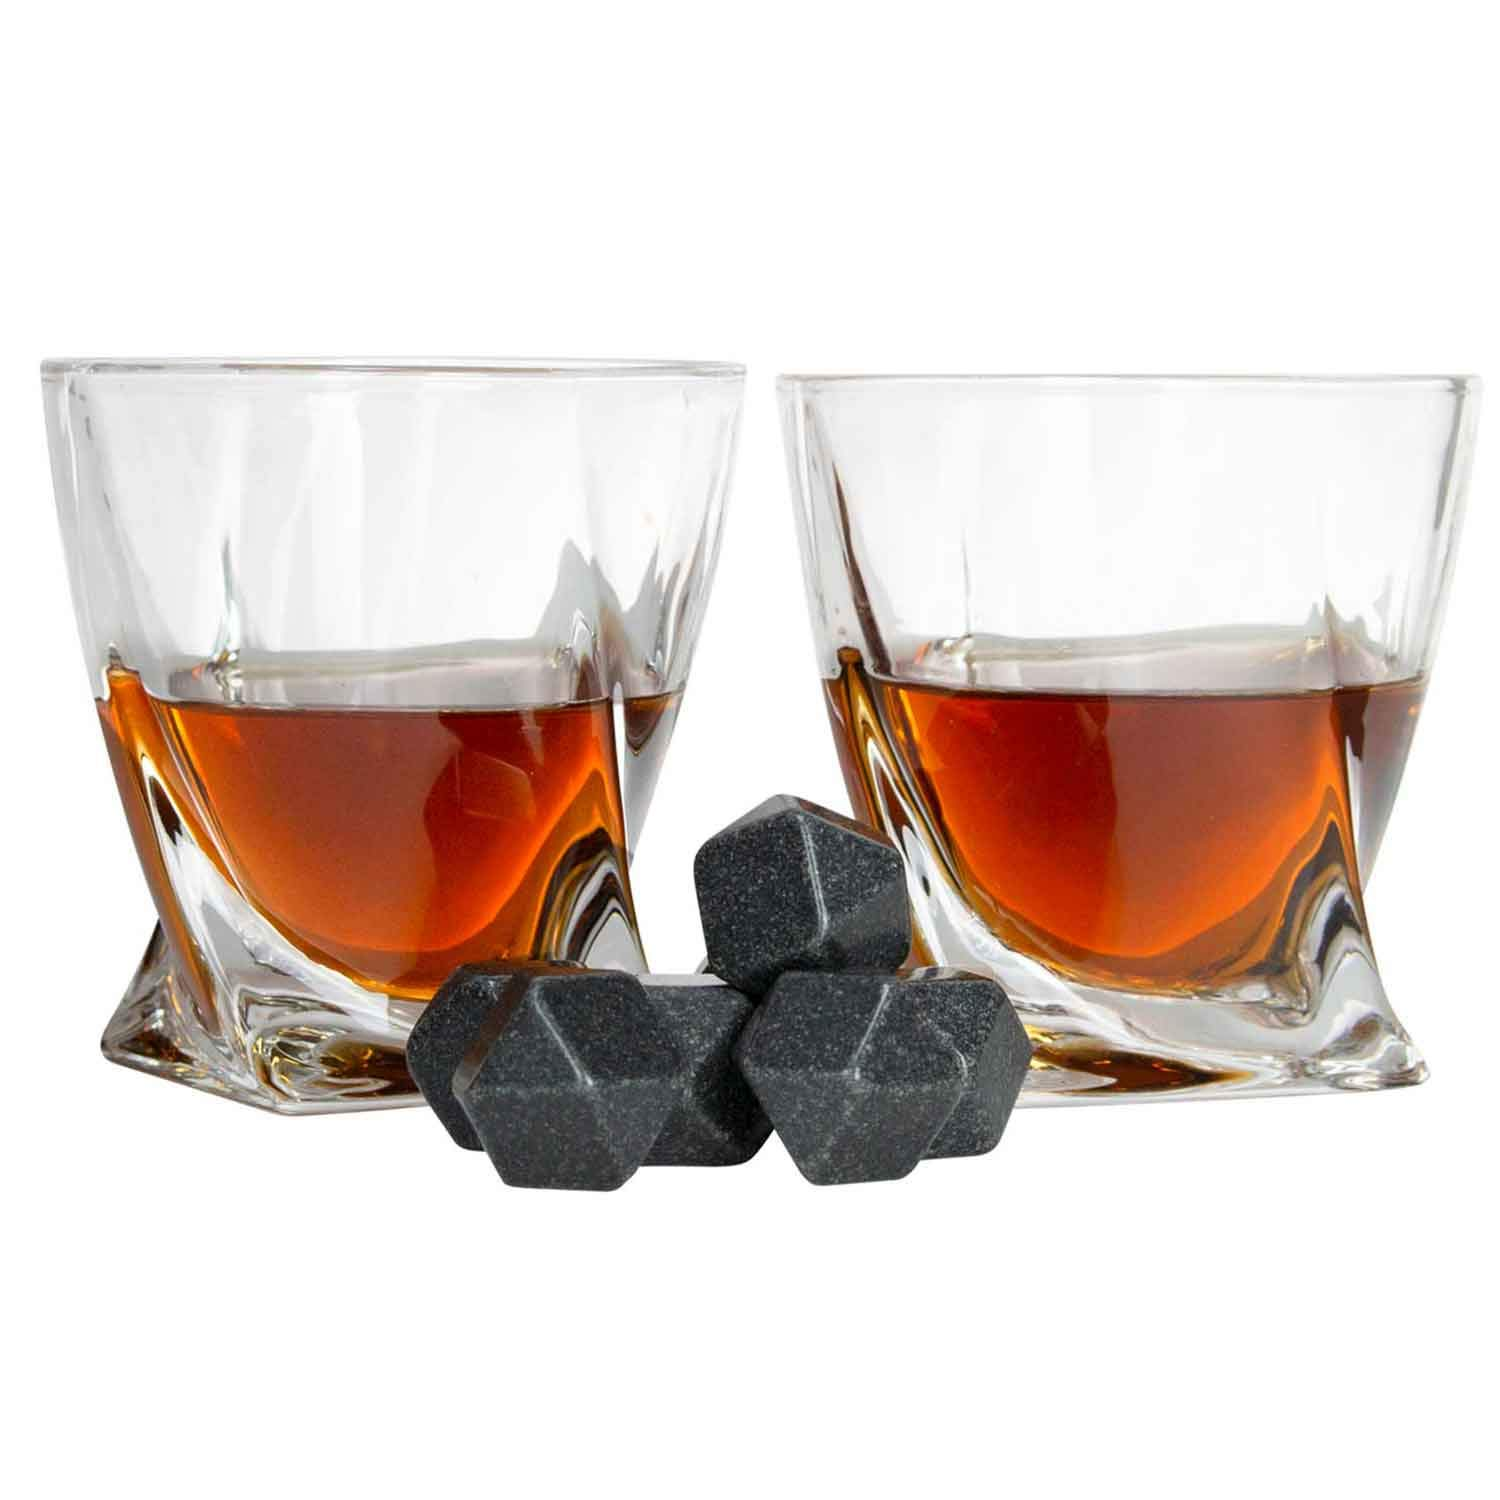 Atterstone Crate Whiskey Box Set with Premium Decanter and 2 Swirl Glasses, Includes 9 Chilling Stones and 2 Dark Stone Coasters, Encased in Polished Wood Box Great for Holiday and Wedding Gifts by Atterstone (Image #6)